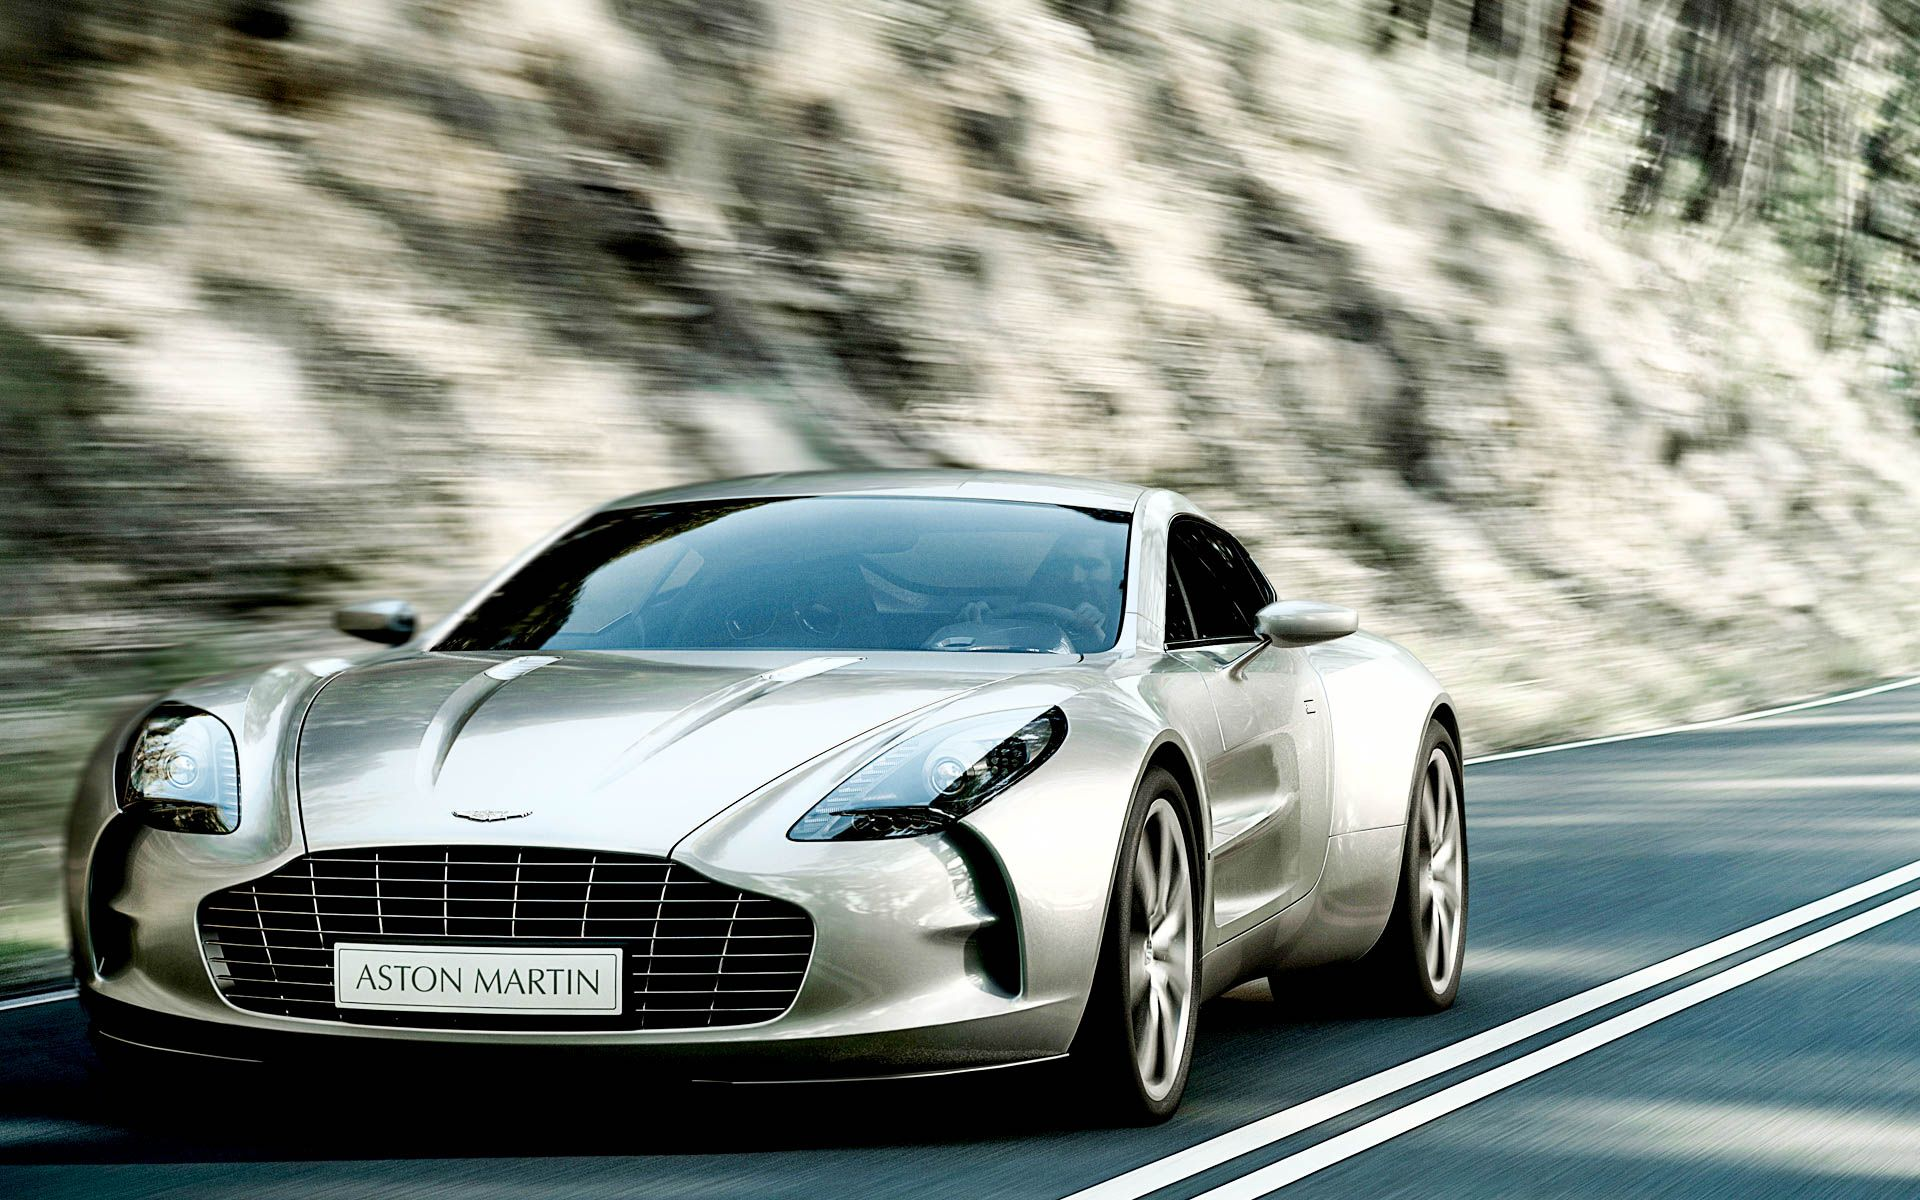 Aston Martin One 77 Wallpapers Top Free Aston Martin One 77